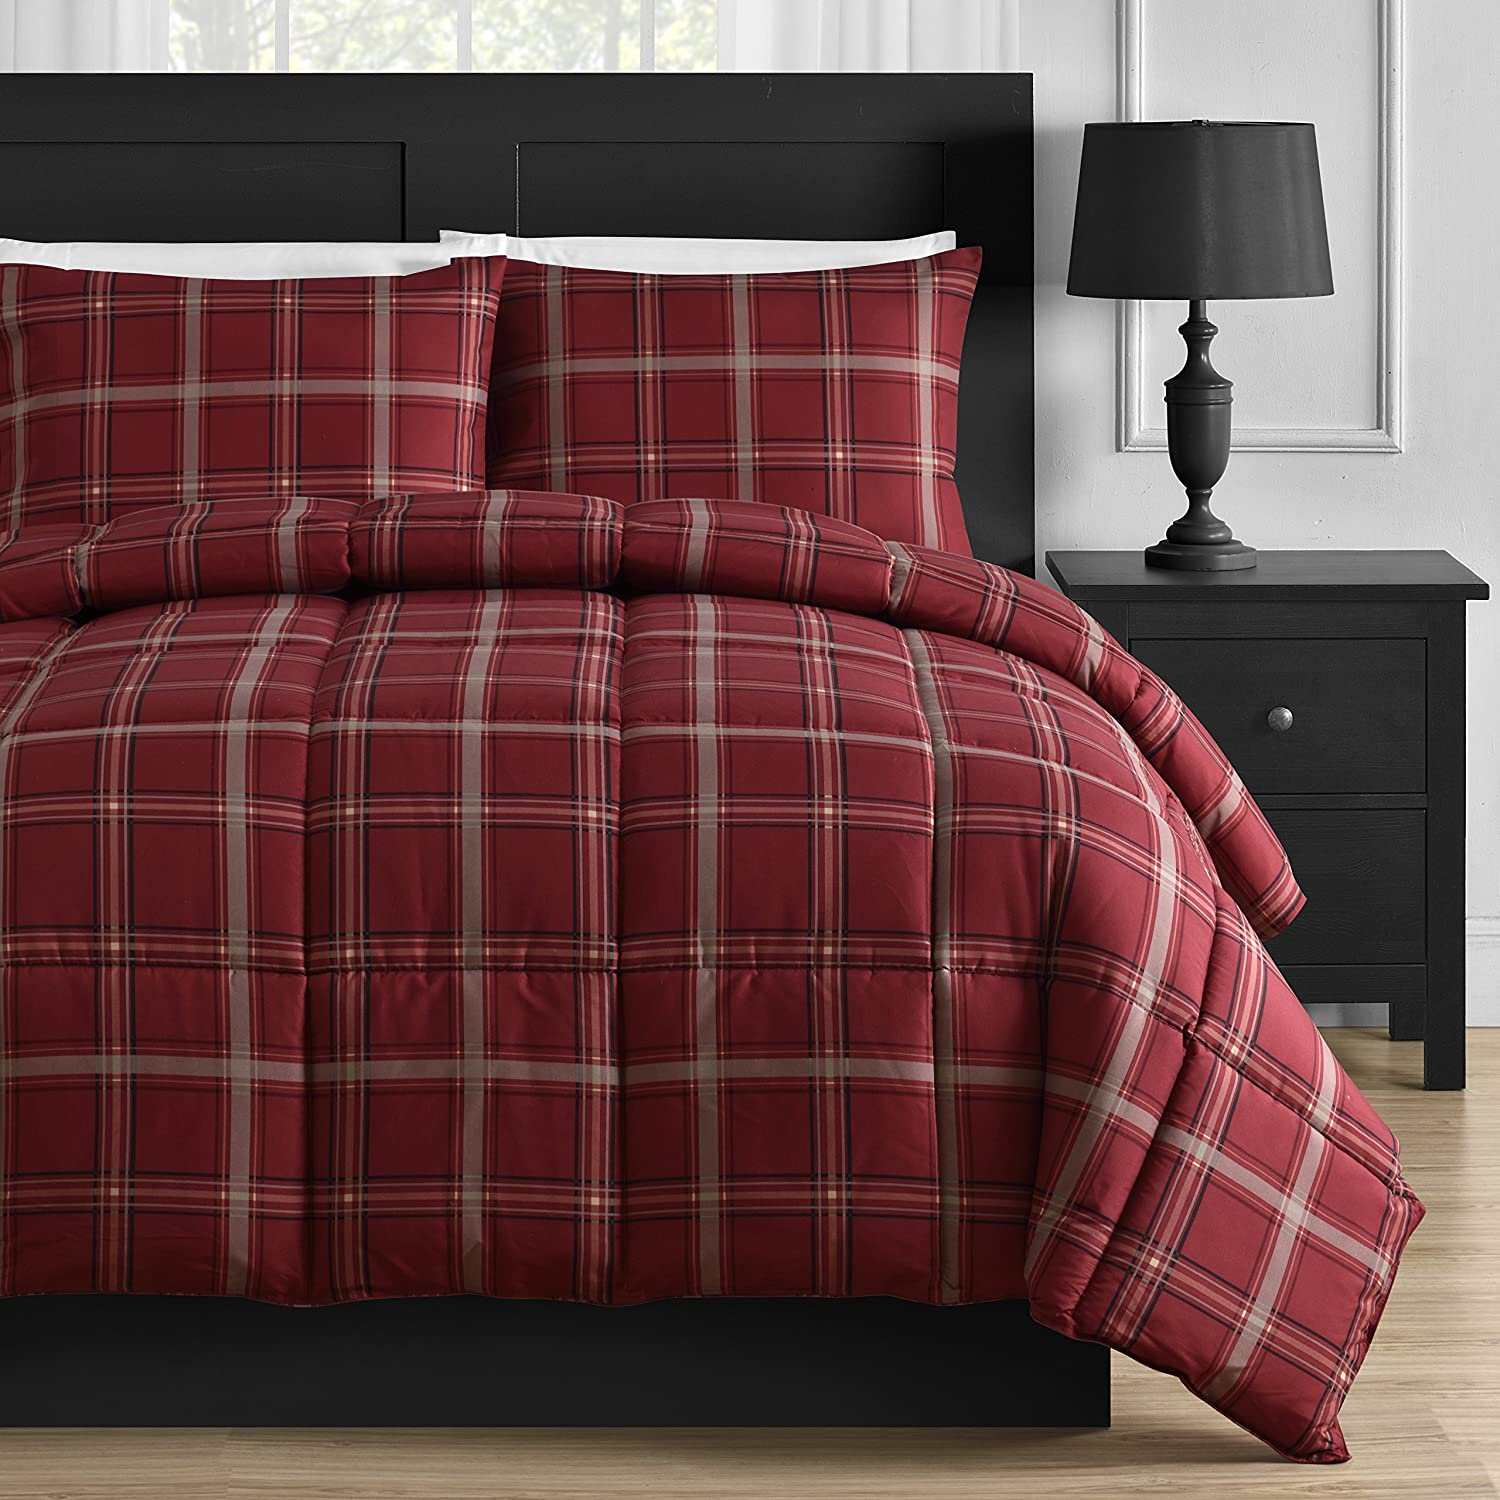 Comfy Bedding Luxurious Rose Red Plaid Down Alternative 3 Piece Comforter Set